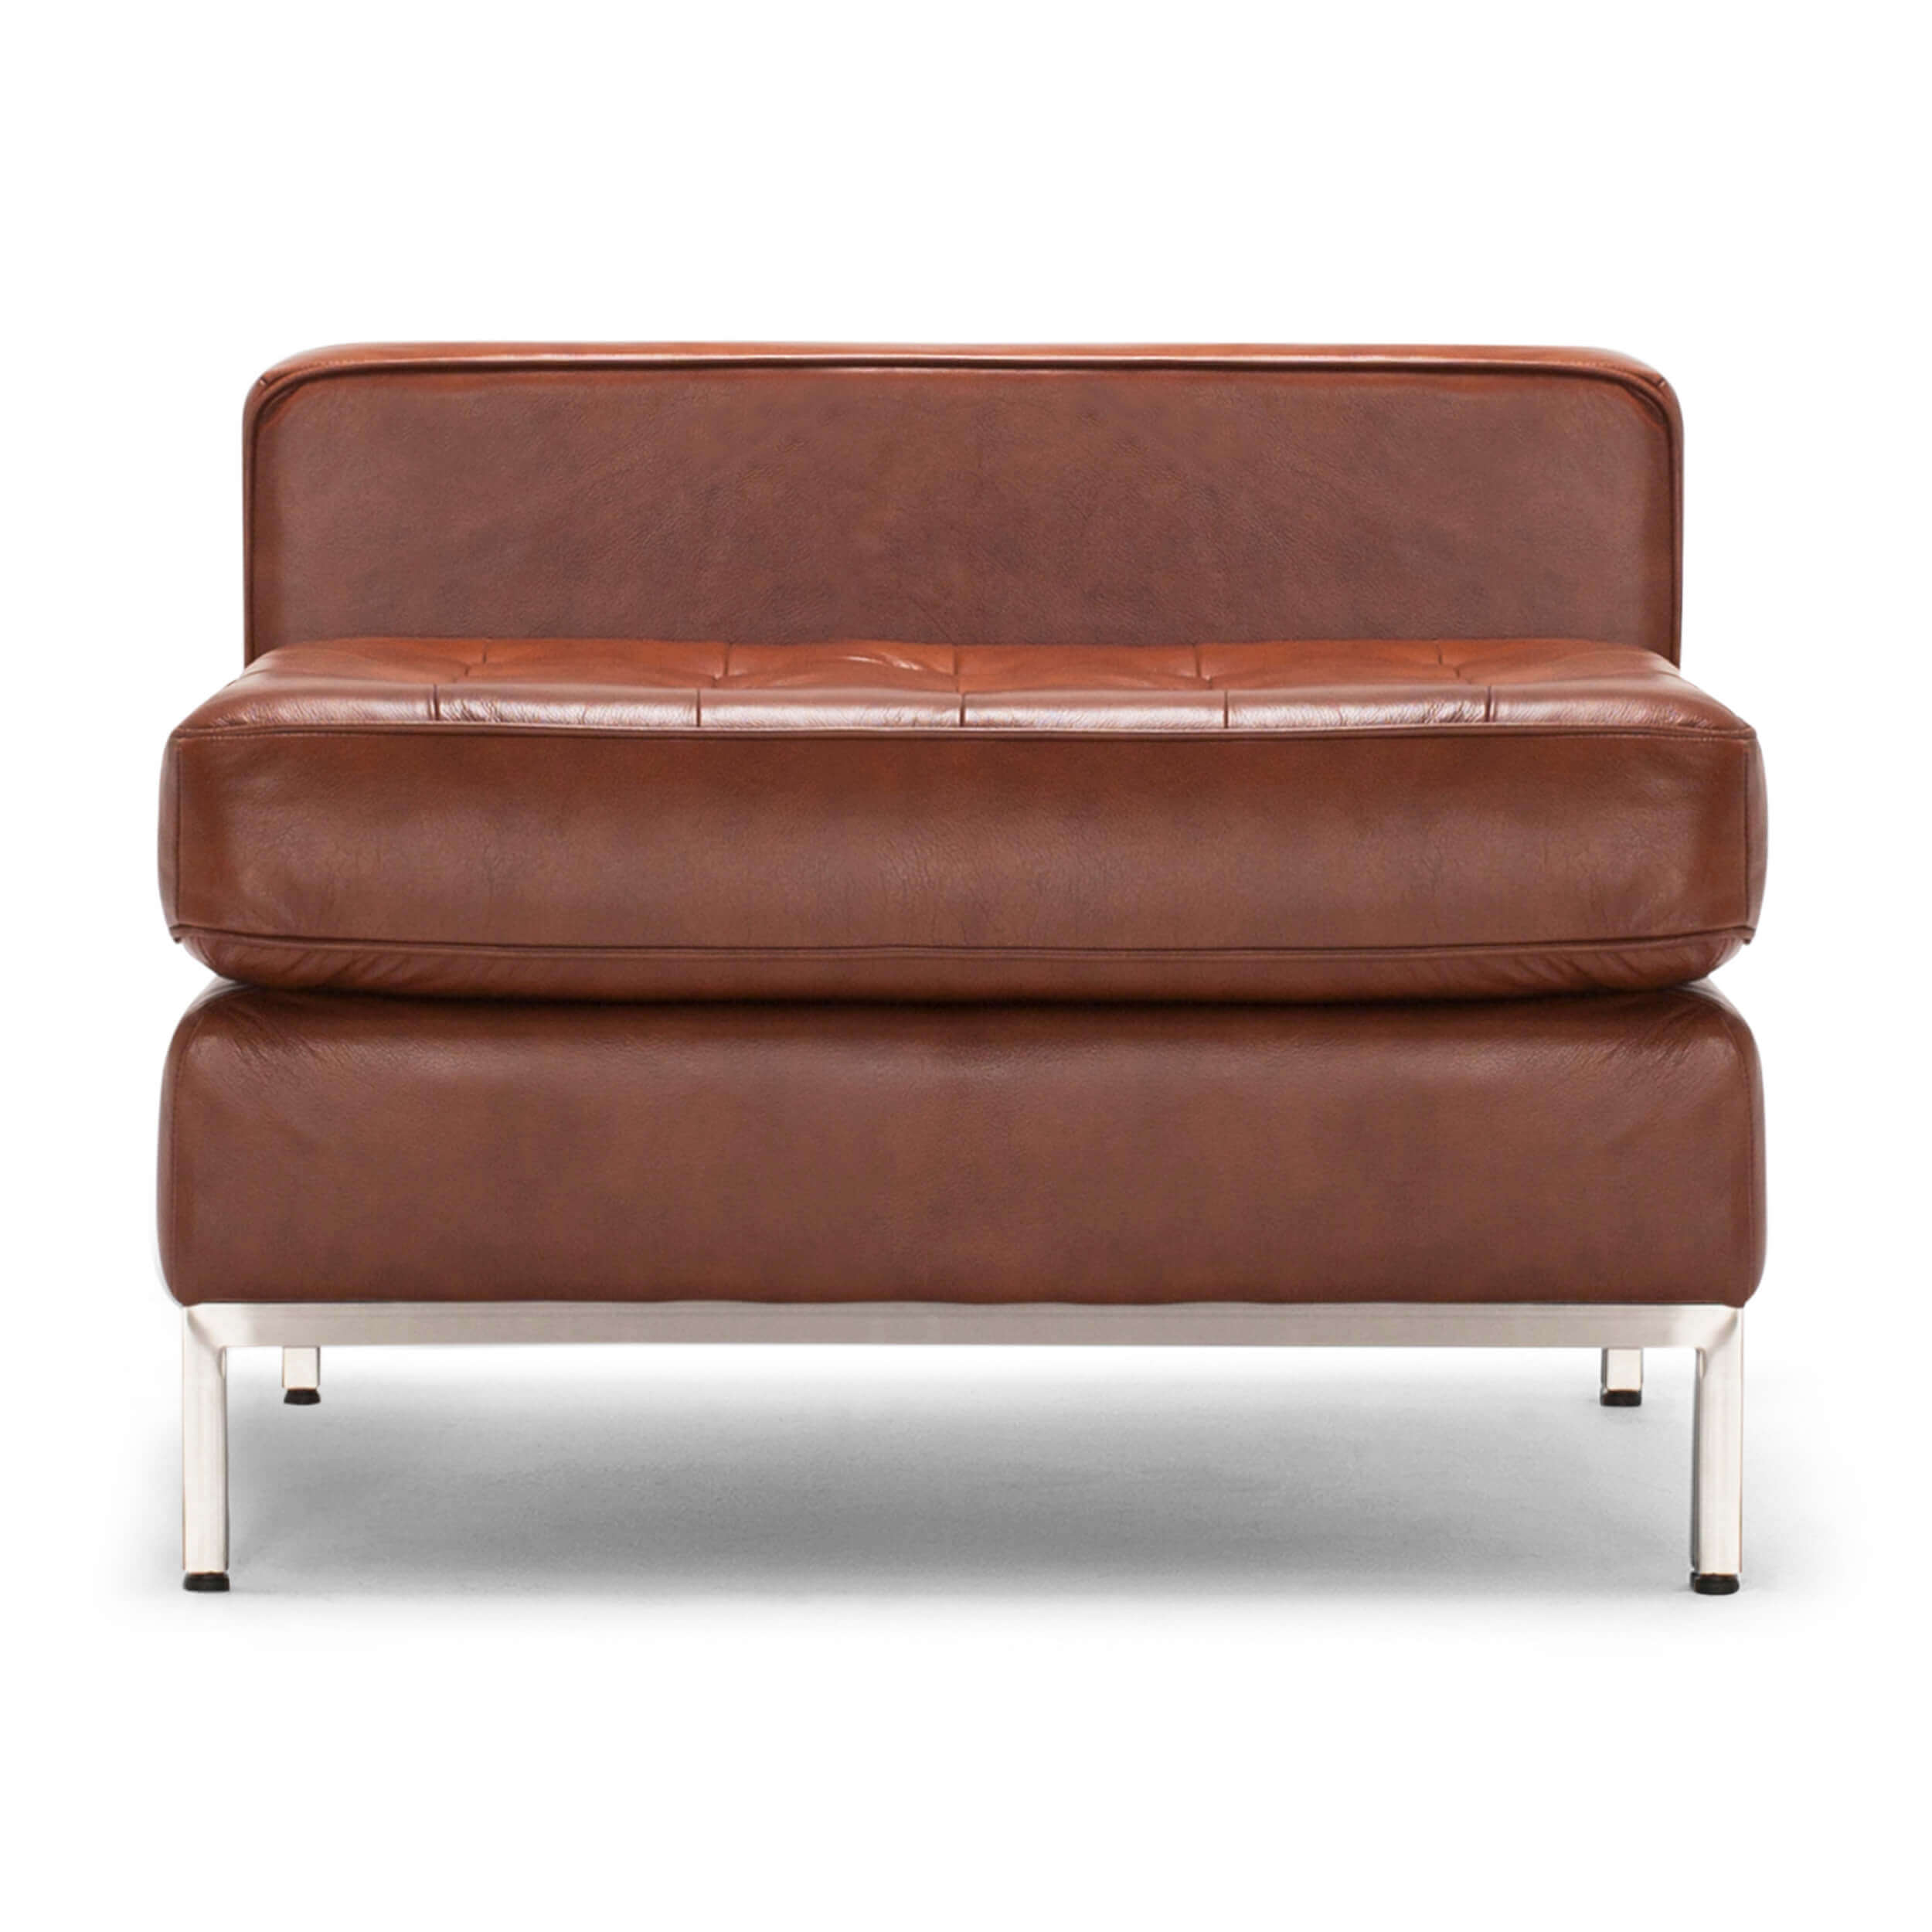 REVERIE LEATHER EXTENDED SEAT